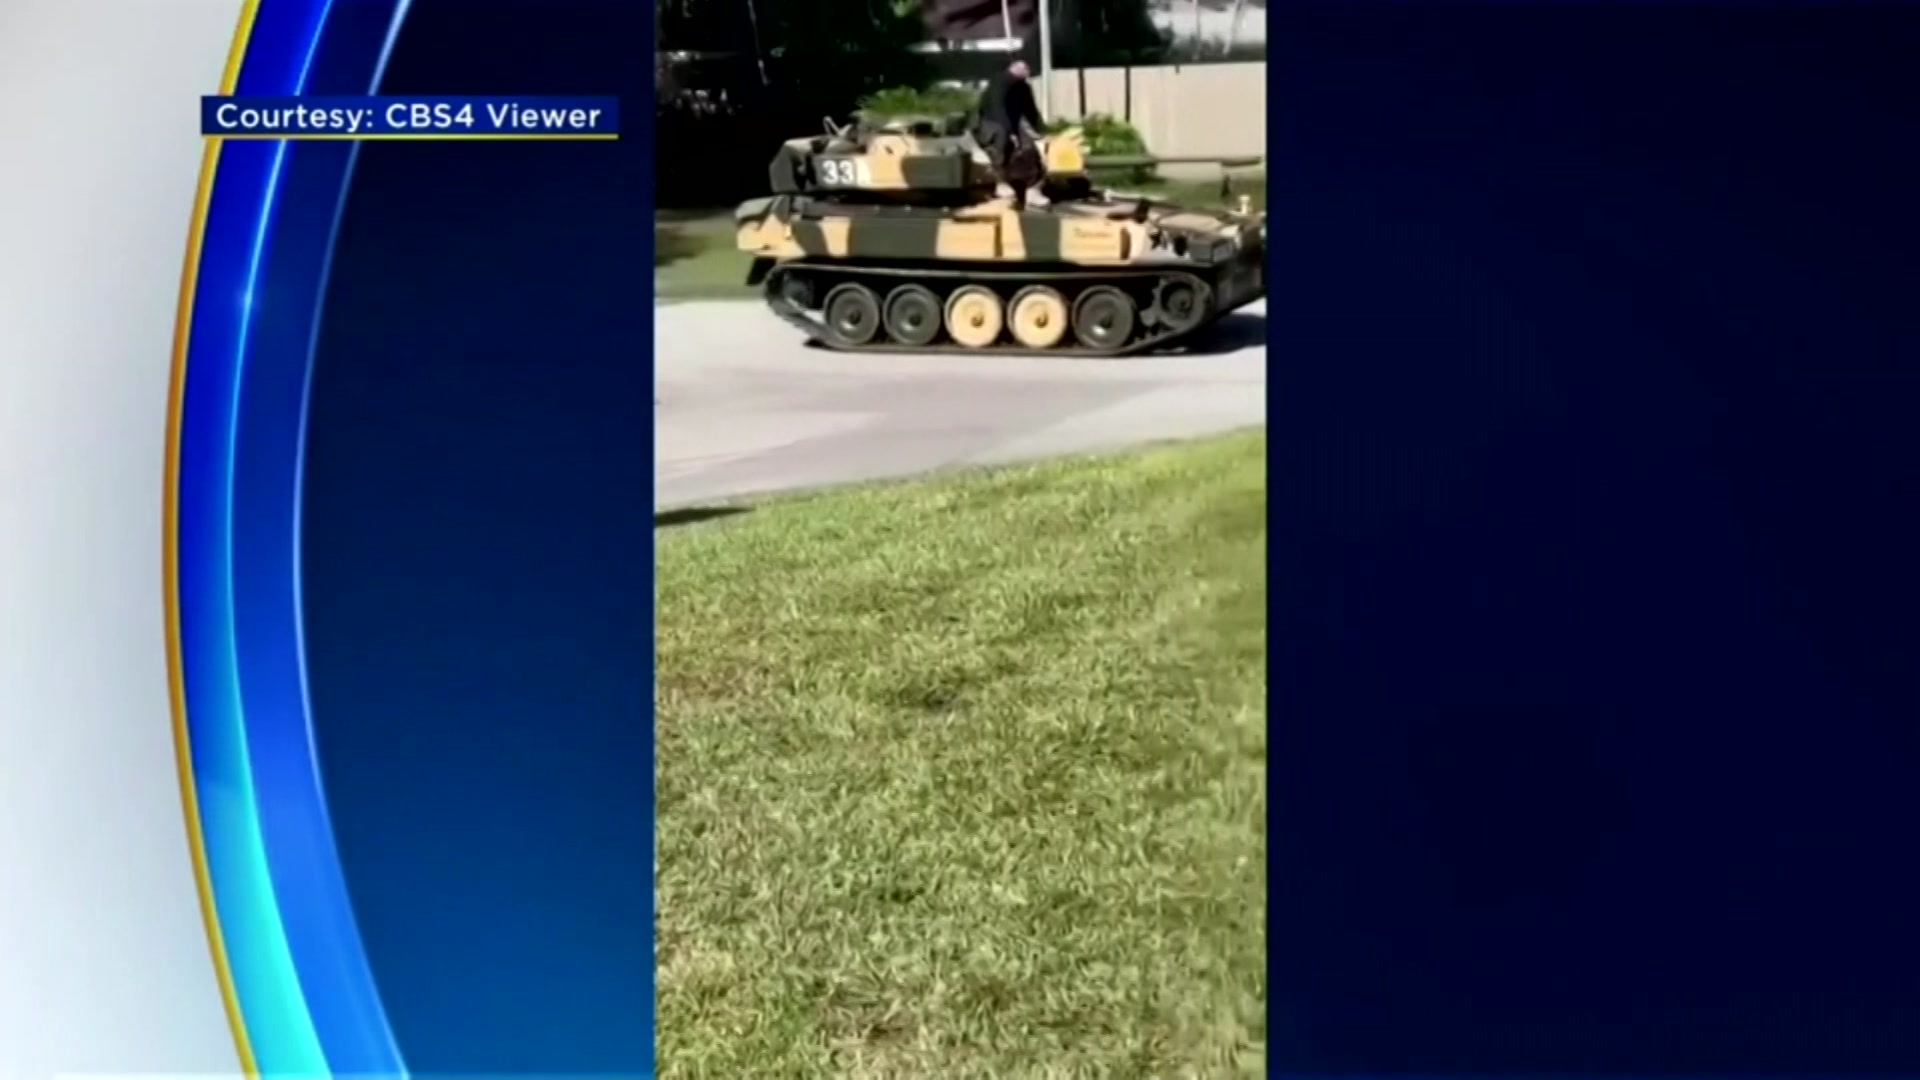 'Is His Purpose To Intimidate Or Show Off': Palmetto Bay Resident Drives Military-Style Tank Through Residential Streets